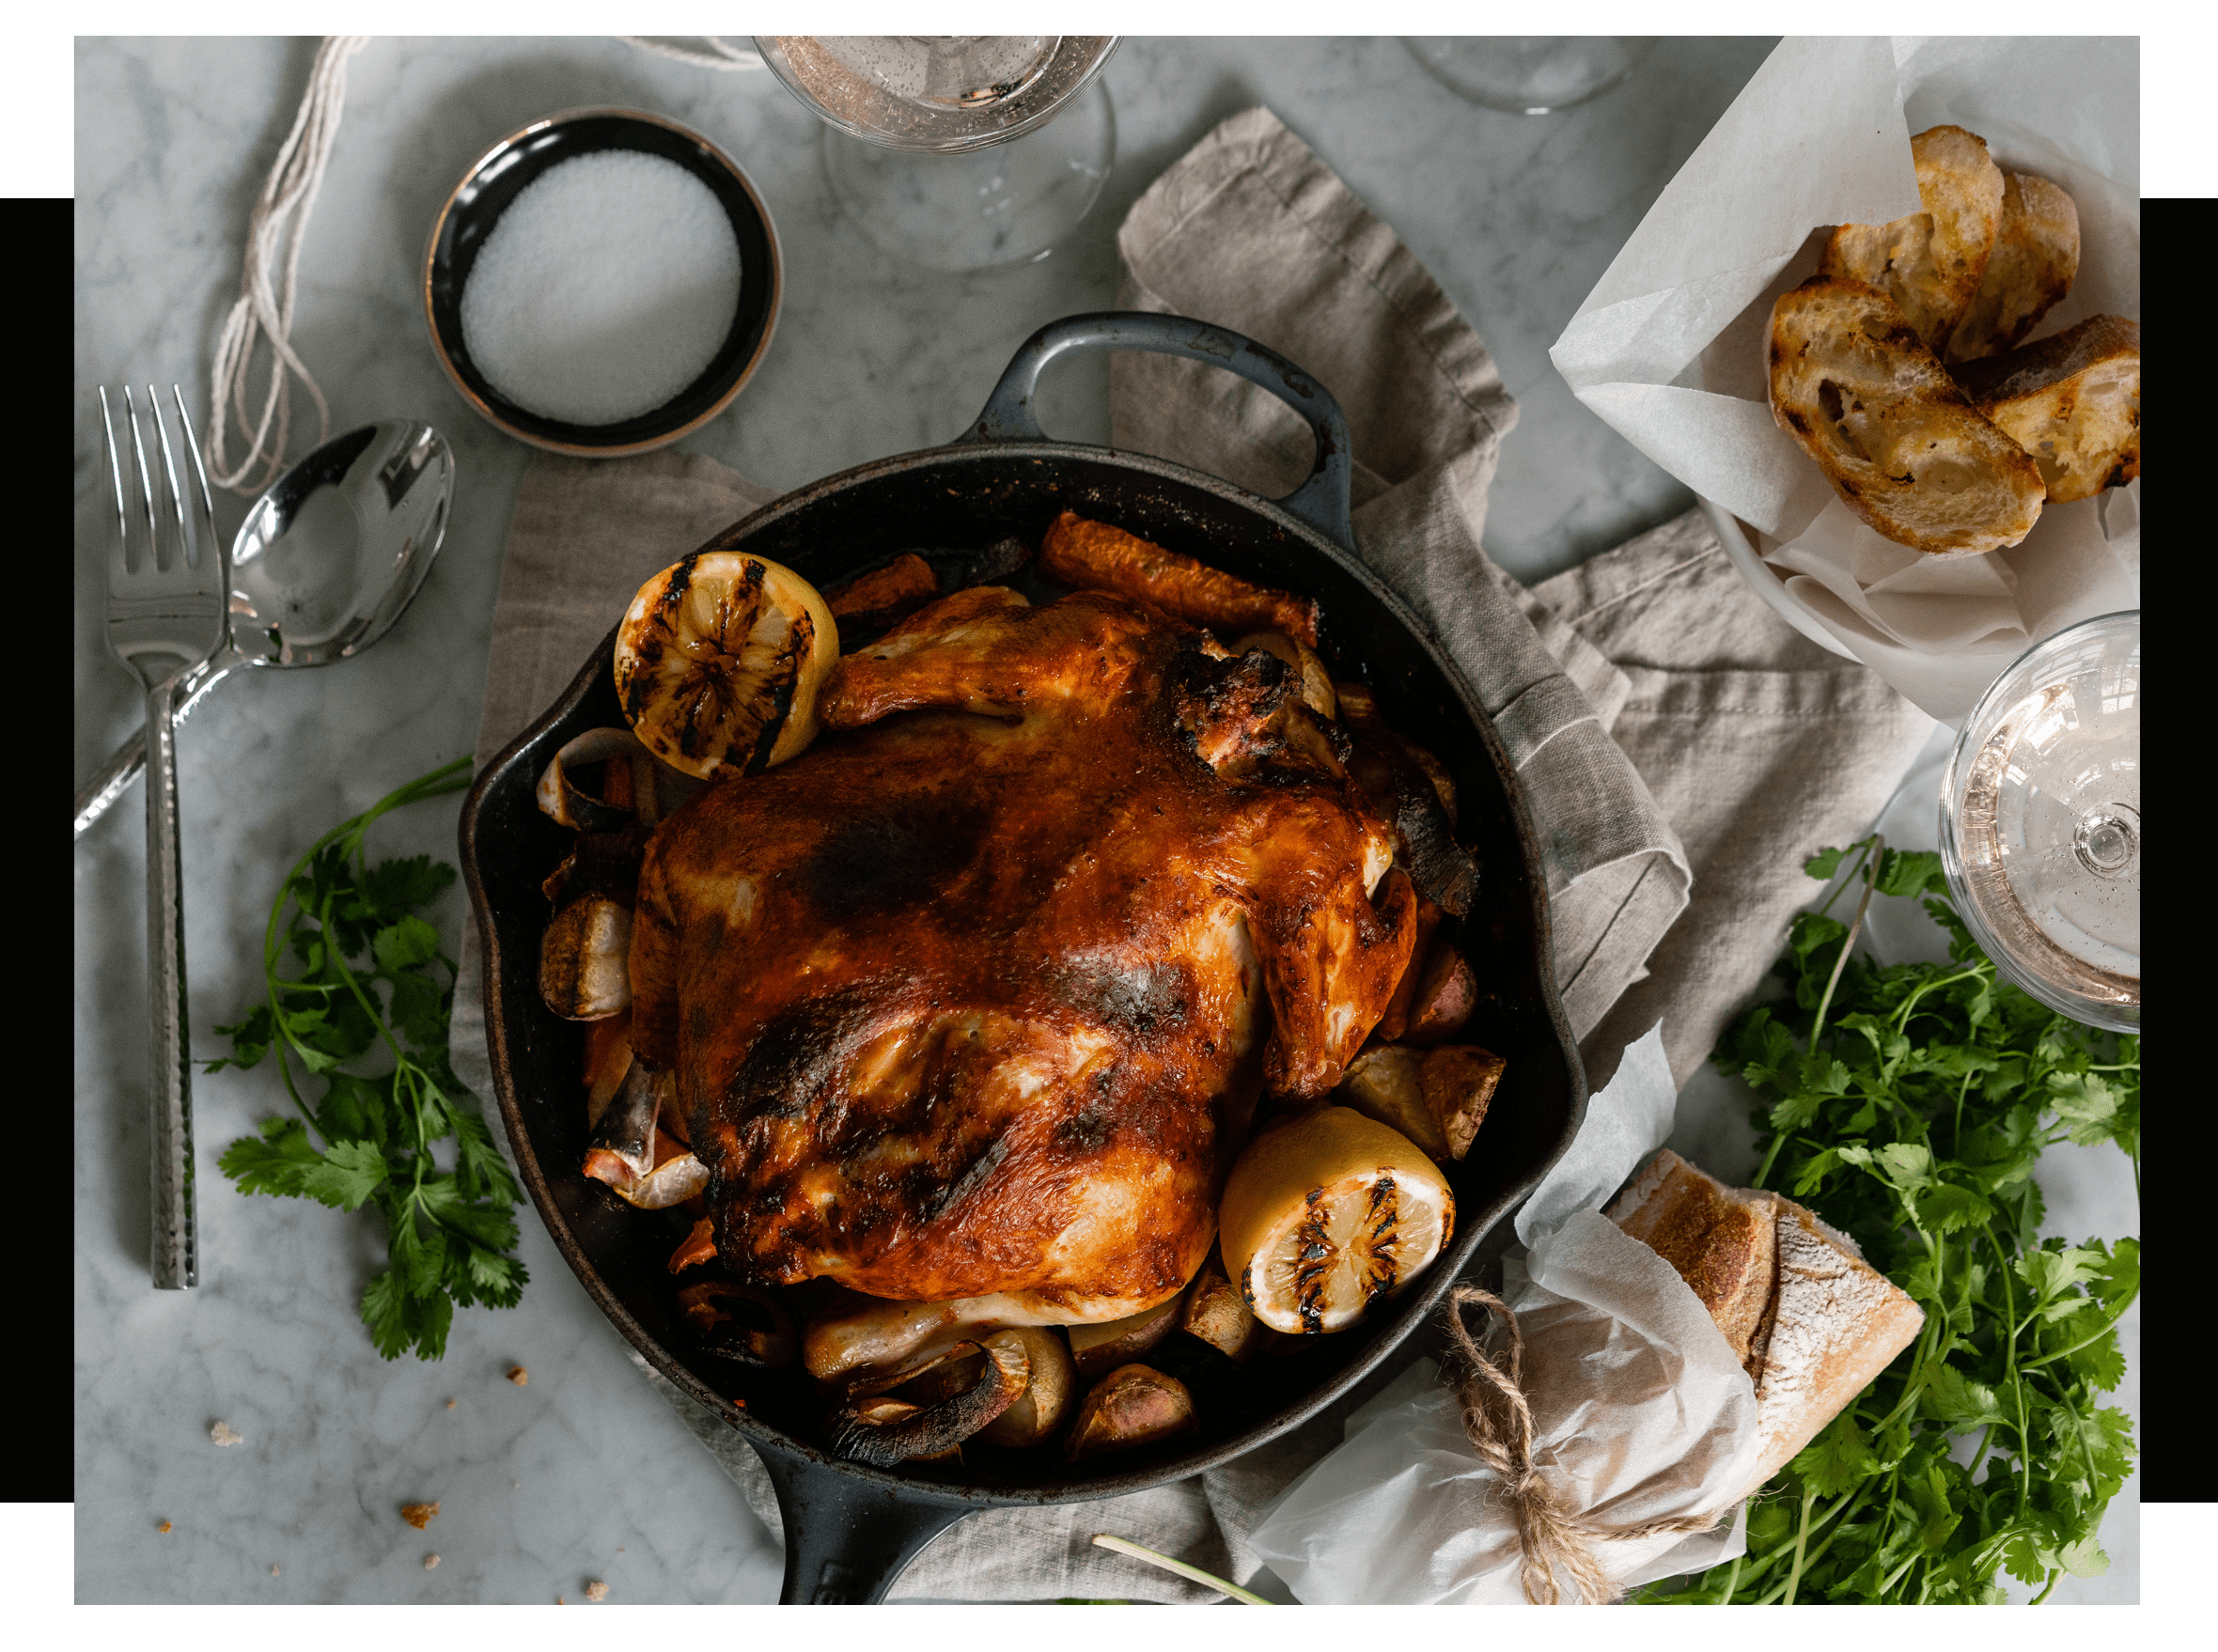 Food Journal: Roasted Chicken Recipe